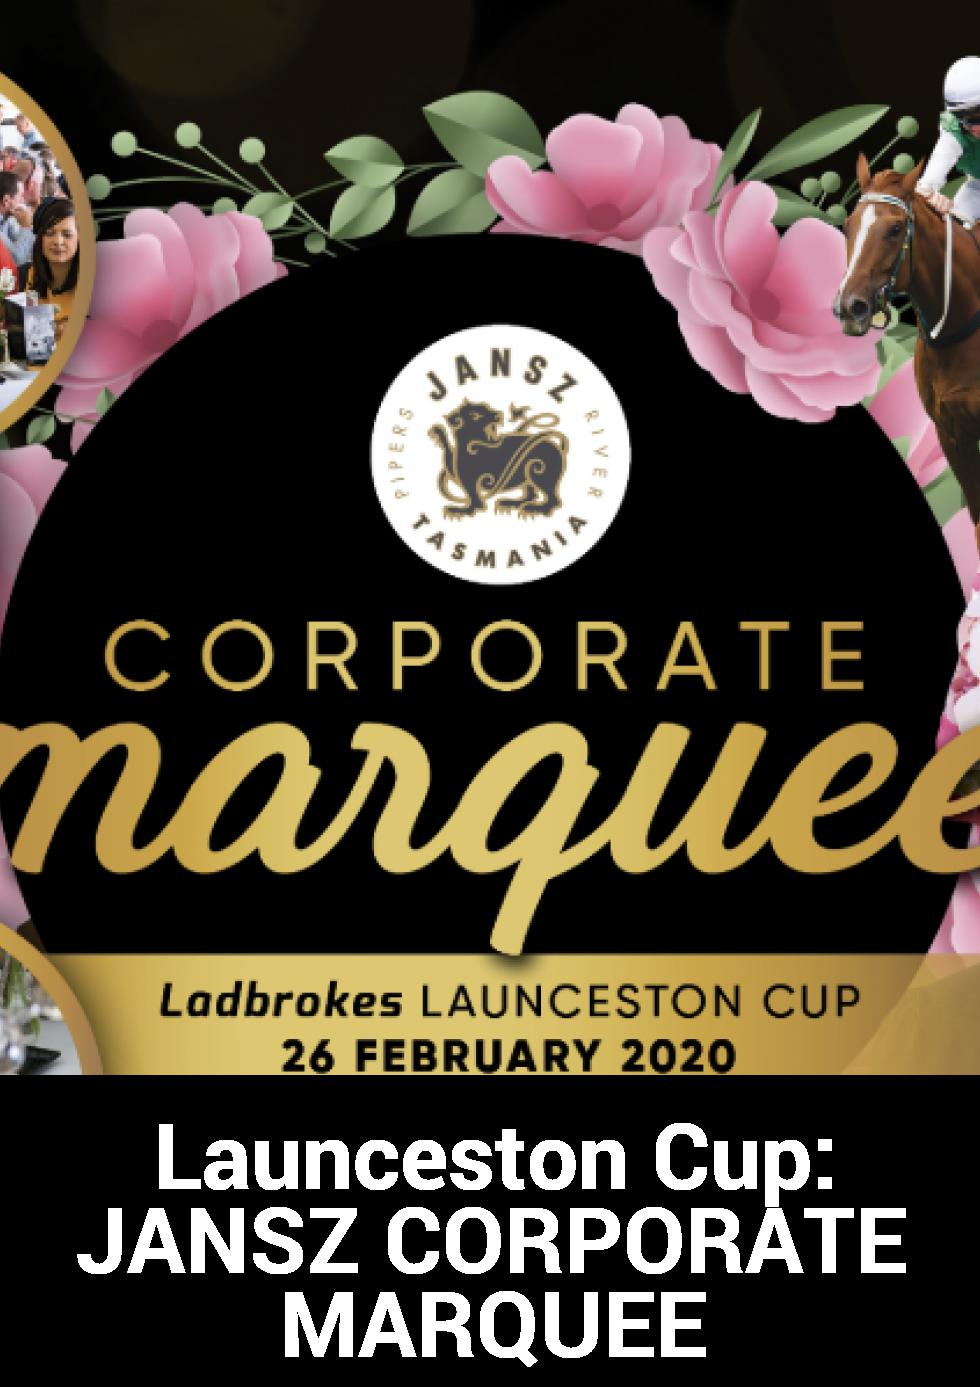 Launceston Cup: JANZ CORPORATE MARQUEE at Tasmanian Turf Club Inc